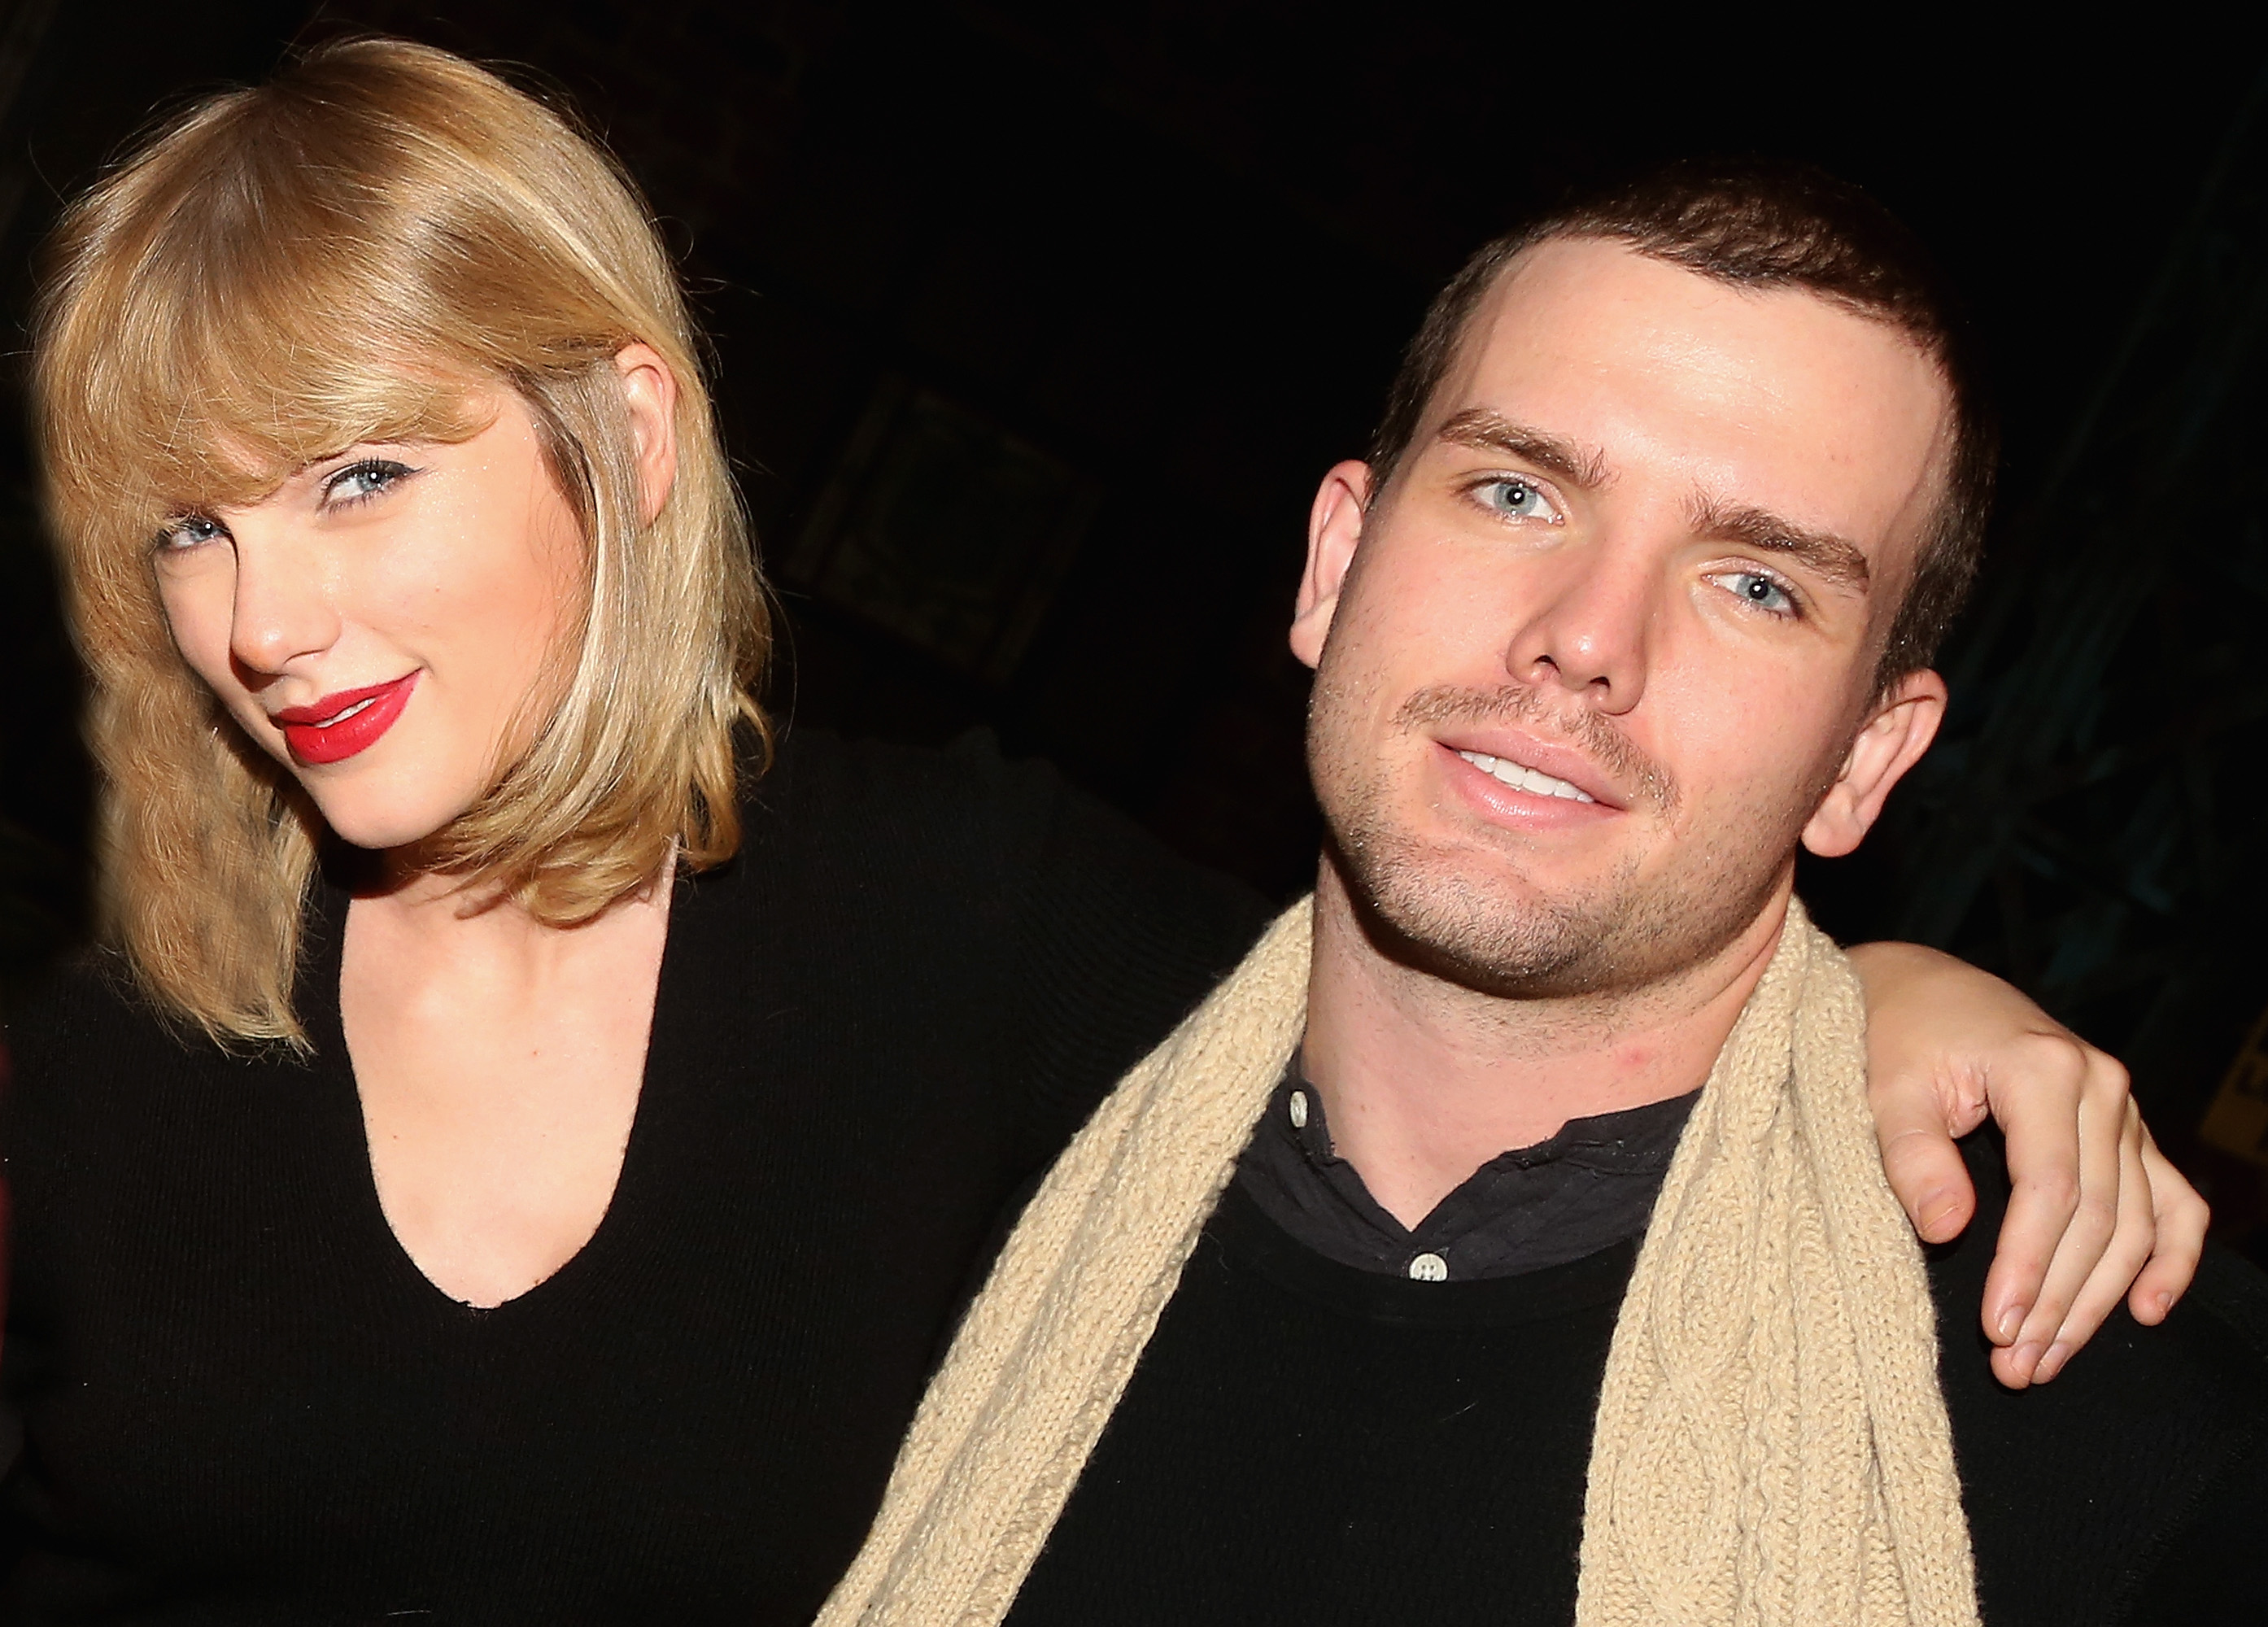 Taylor Swift's brother Austin is a movie star now, and his red carpet debut has us swooning